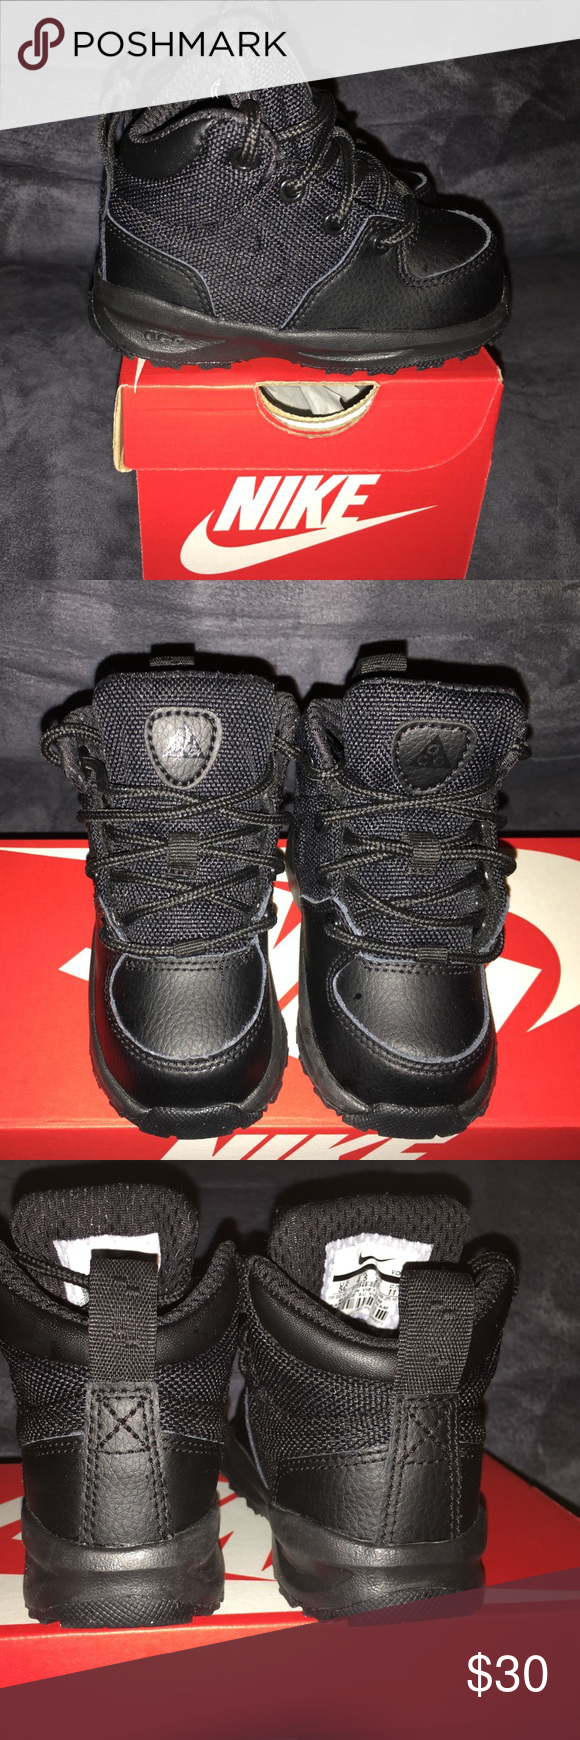 wholesale dealer 6ab9f 3dcf9 Nike ACG Boots Nike ACG Boots. All black, lightweight, good for the snow or  any time. Worn once! Nike Shoes Boots